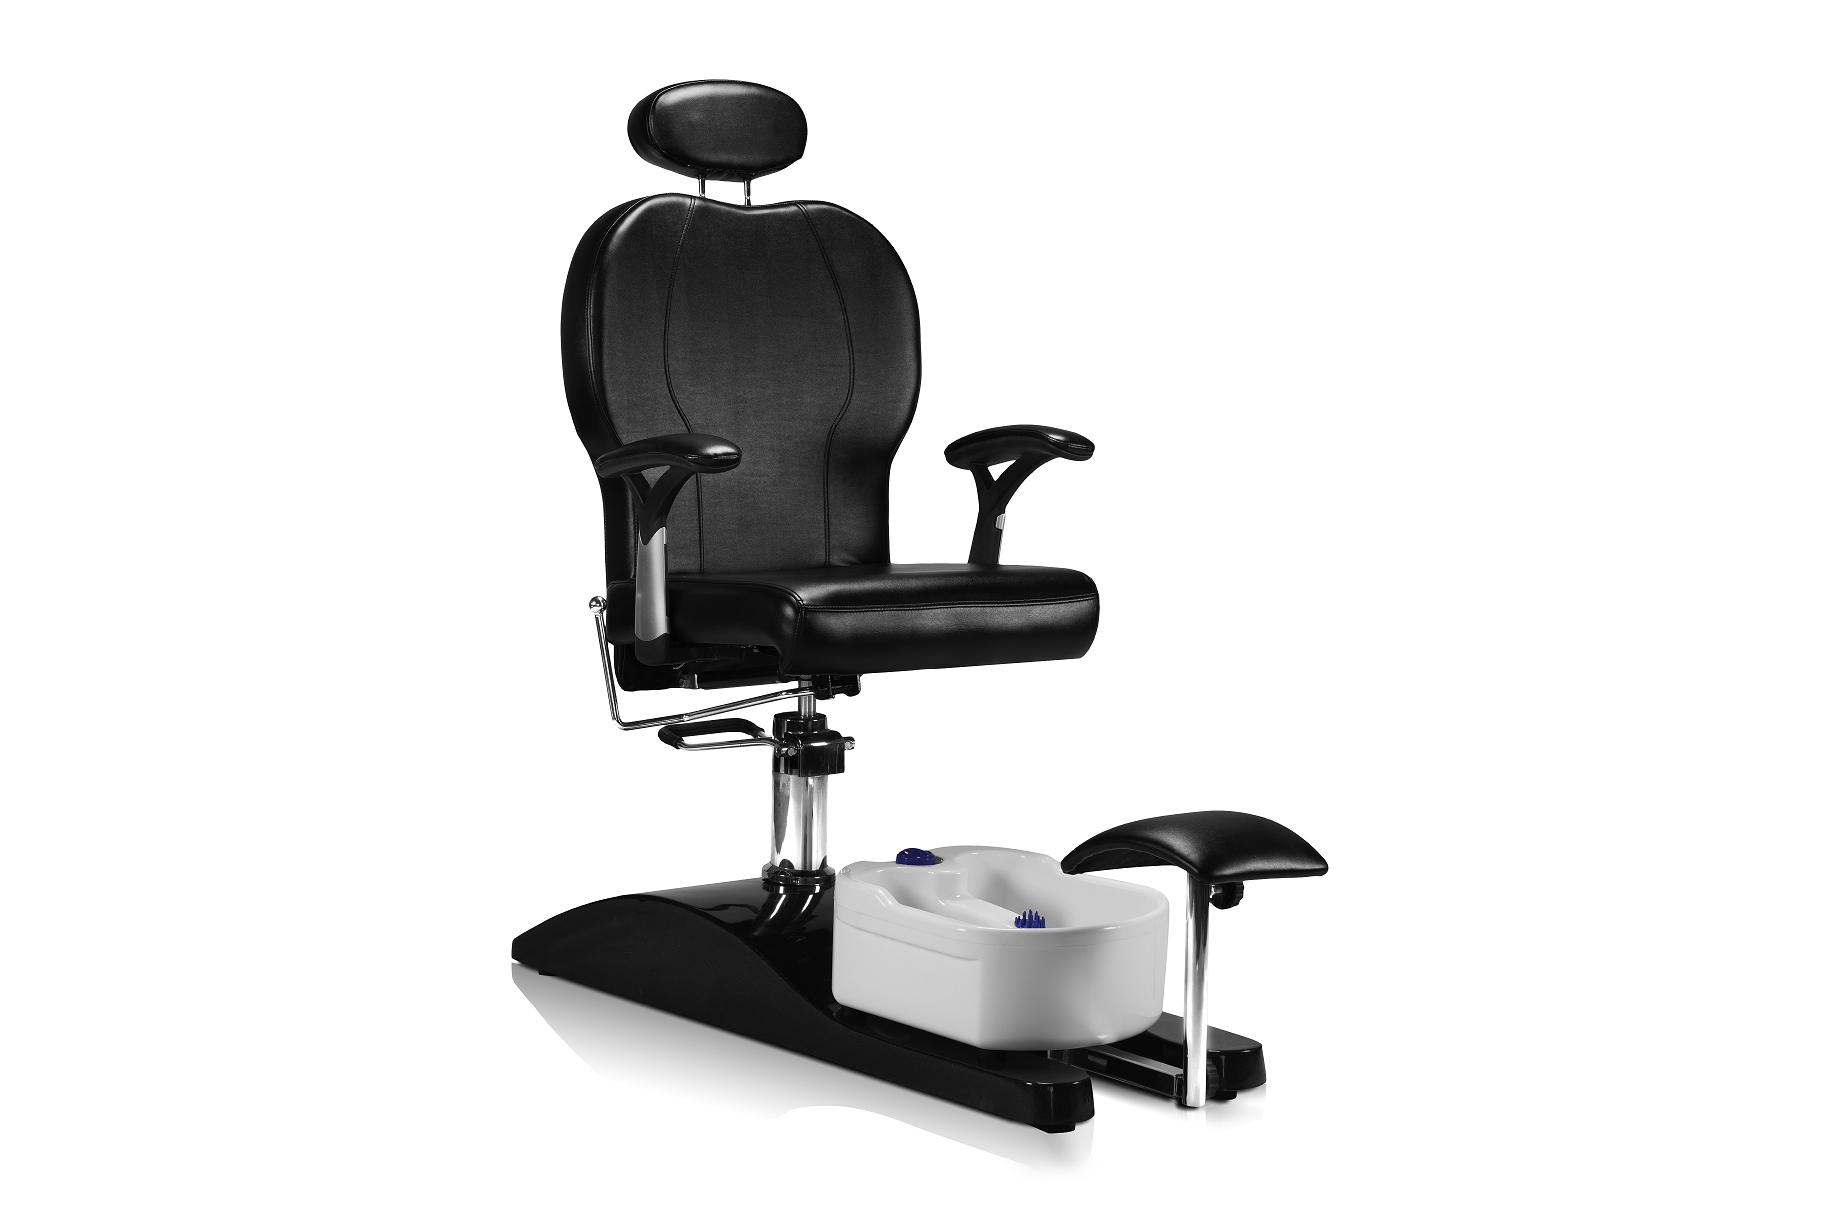 Pedicure Chair with FREE Deluxe Foot Spa No Plumb Spas